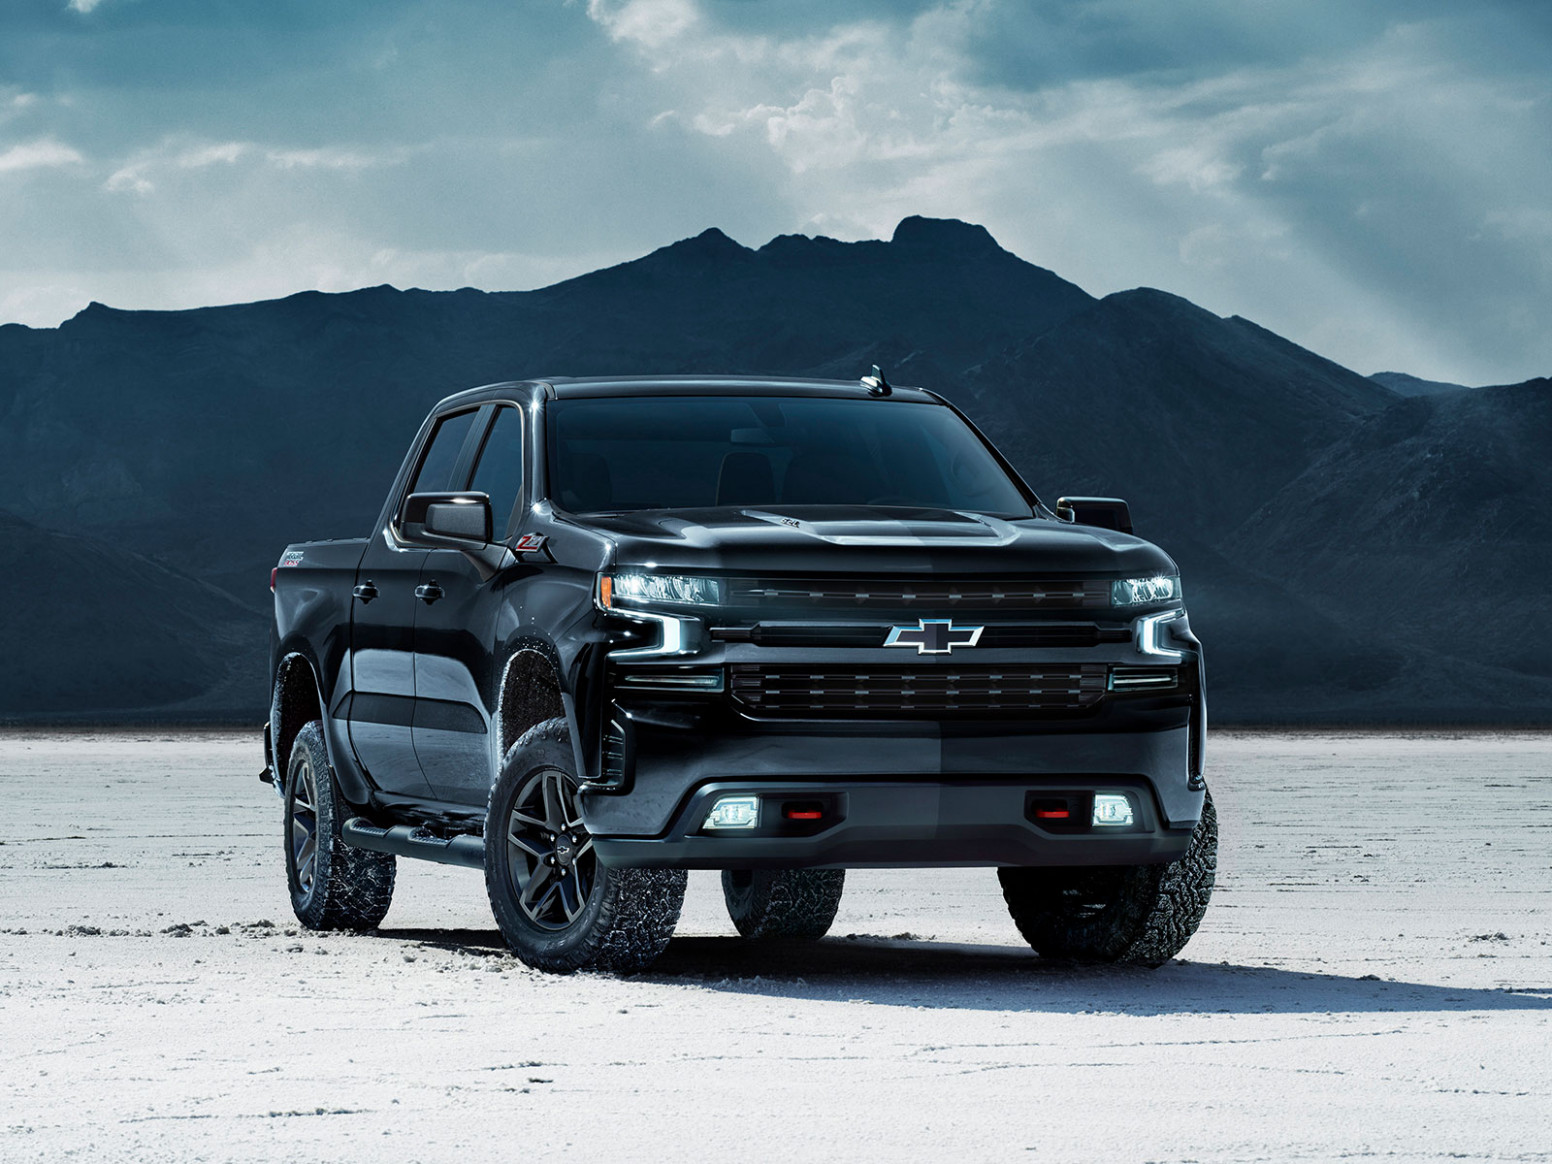 10-Chevrolet-Silverado-Midnight-Edition-10 – AutoGuru